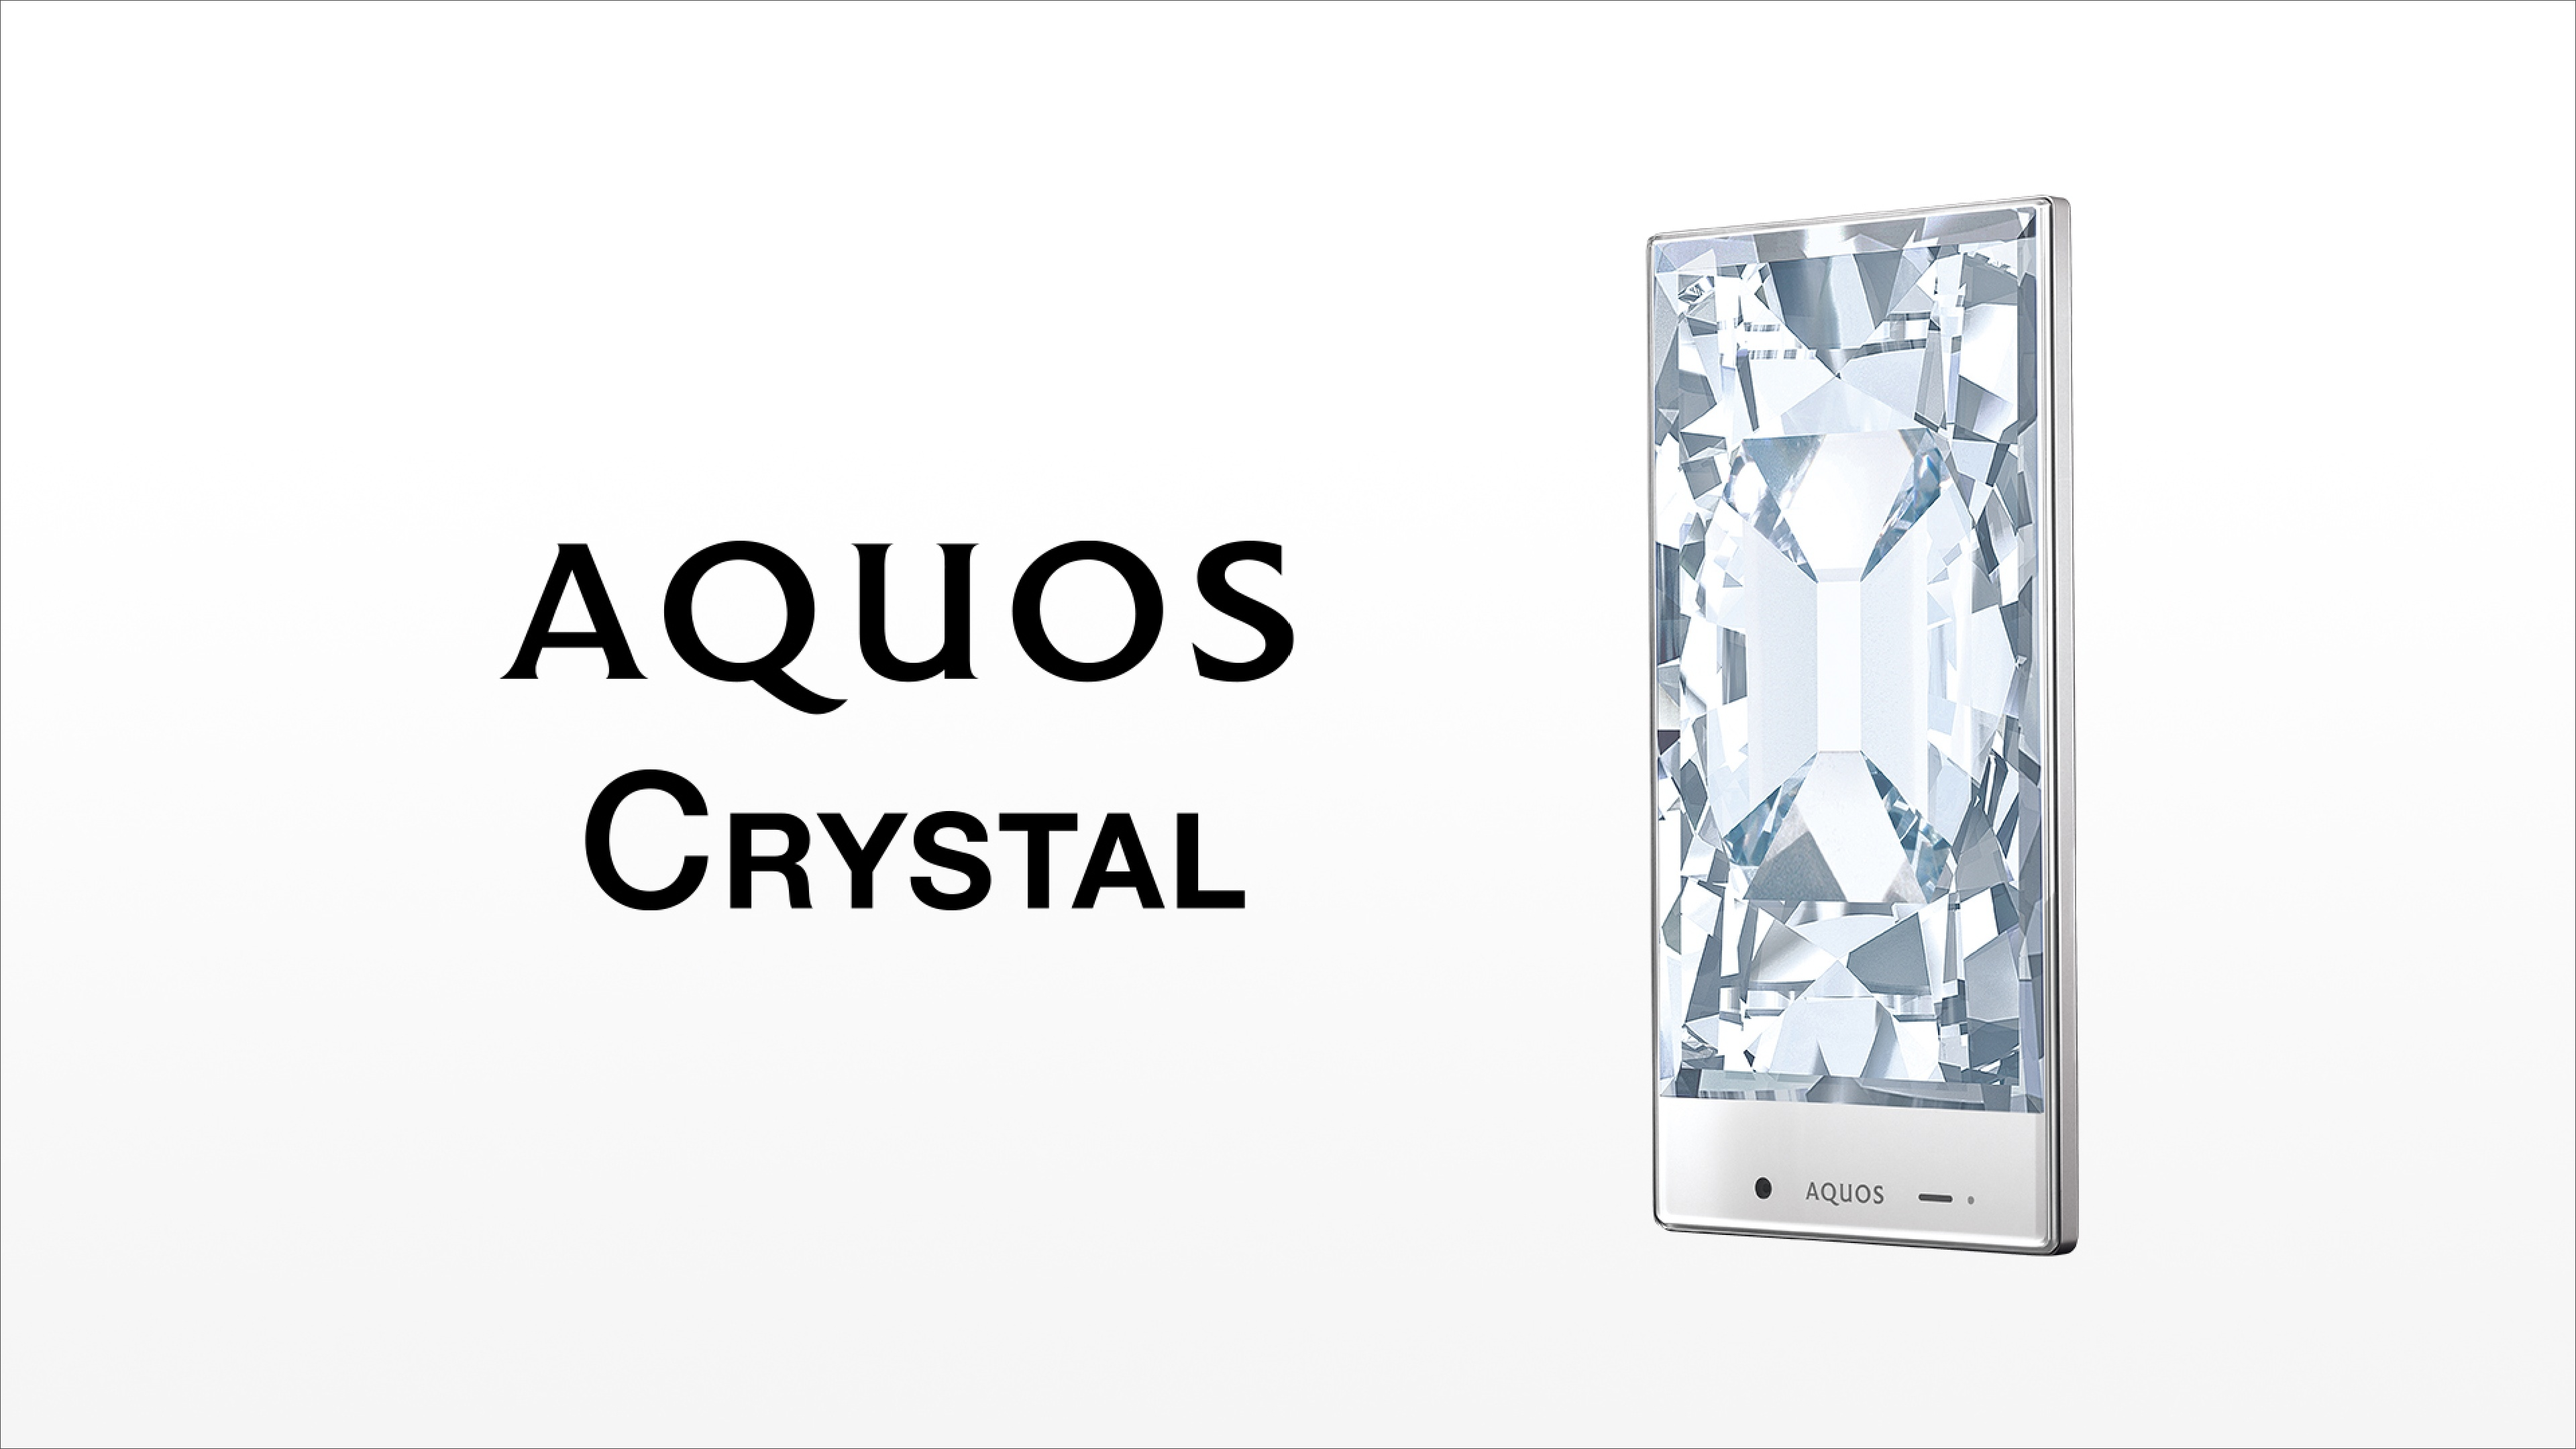 The Sharp Aquos Crystal 3